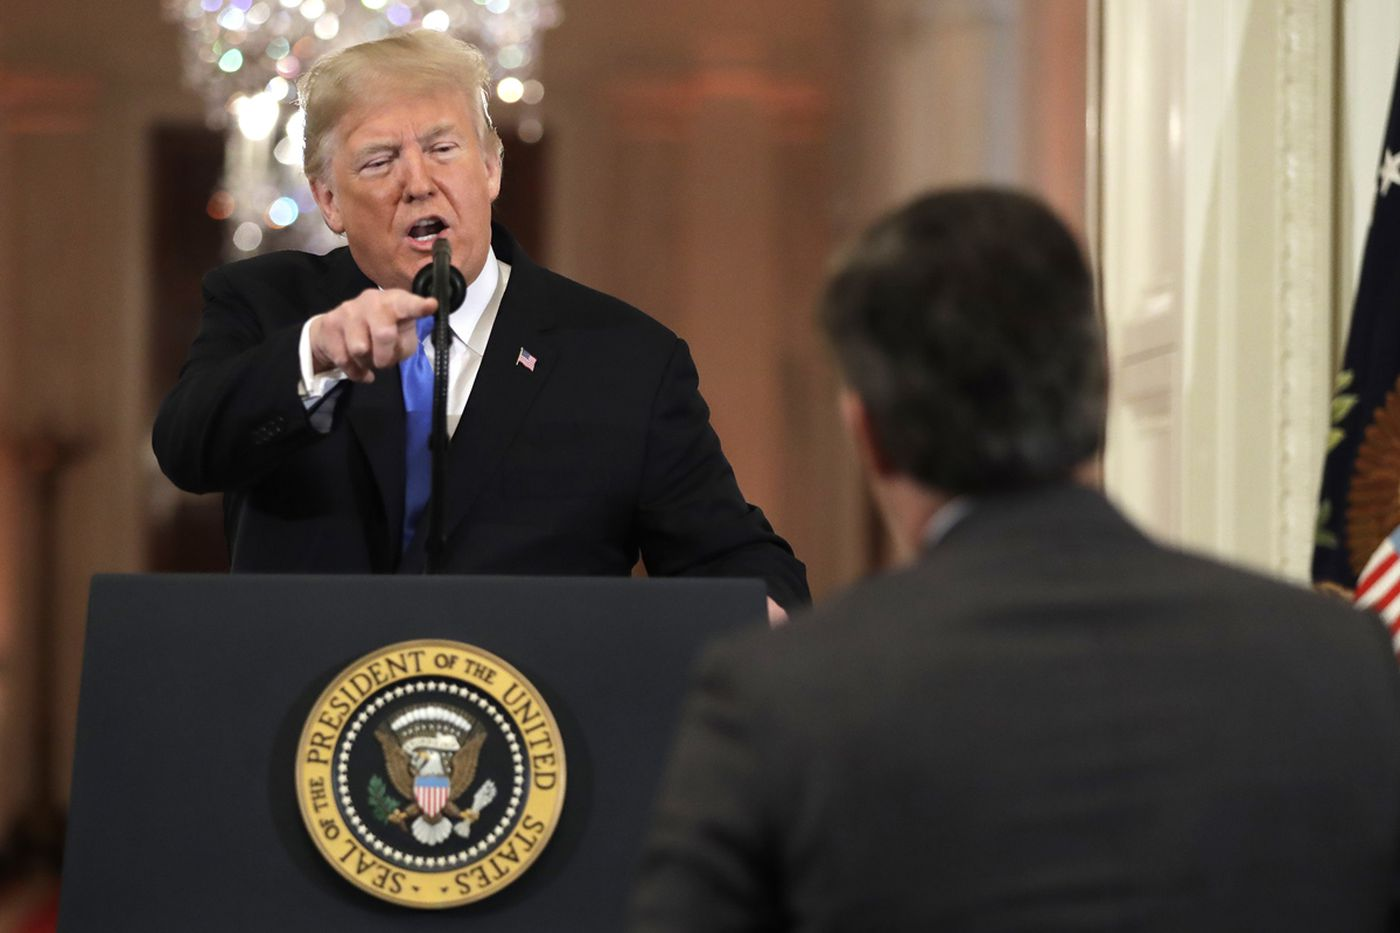 Trump attacks members of his own party and shouts at CNN's Jim Acosta in wild press conference